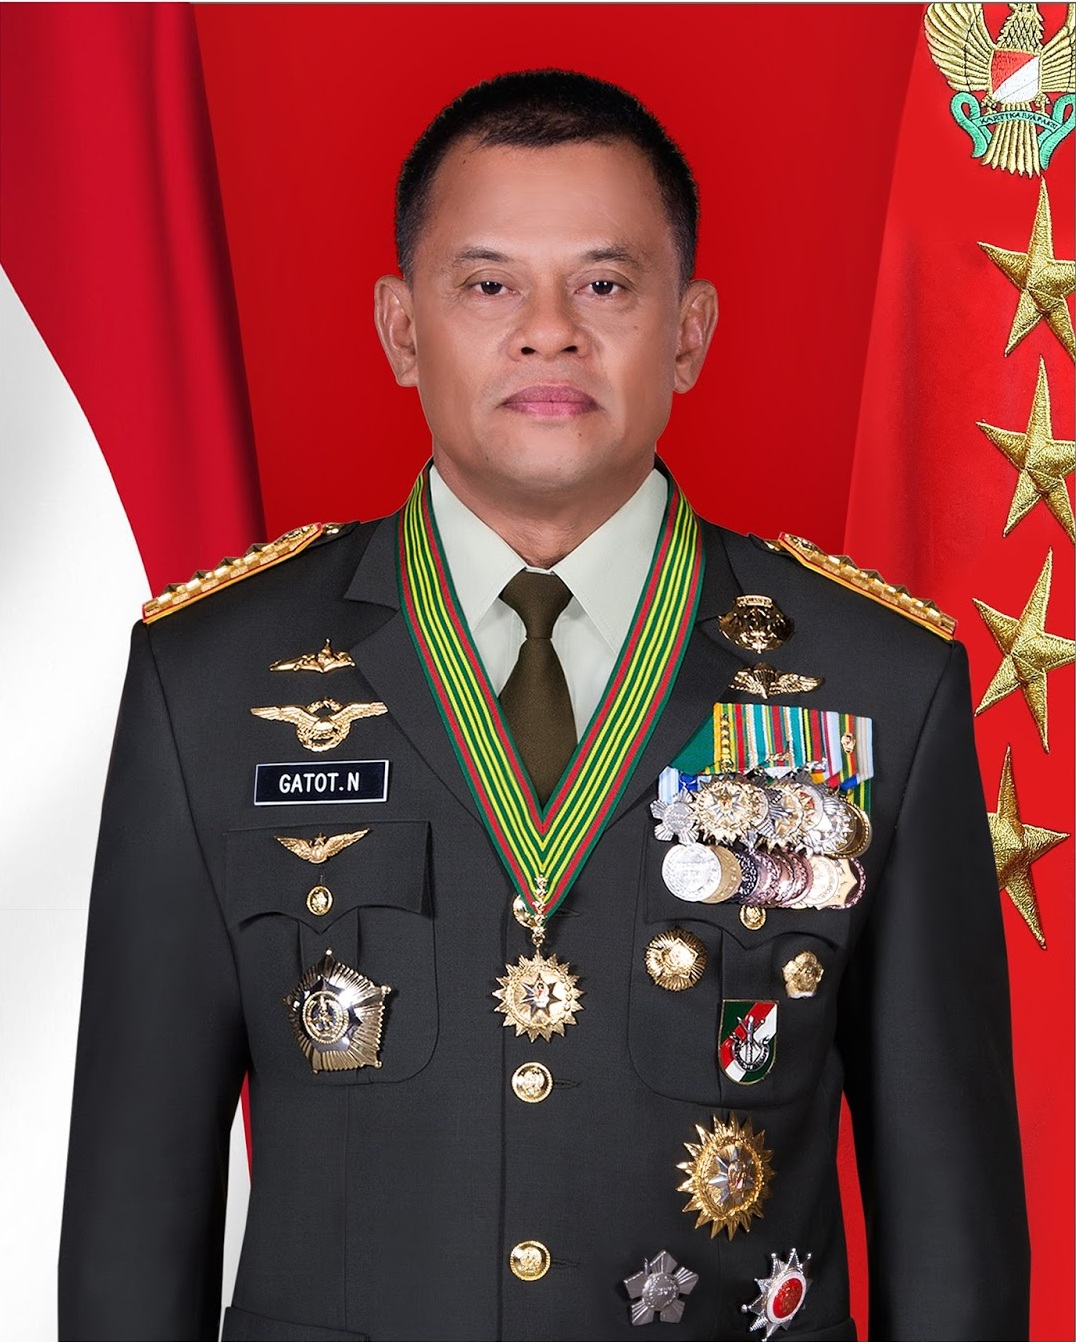 Gatot Nurmantyo Wikipedia